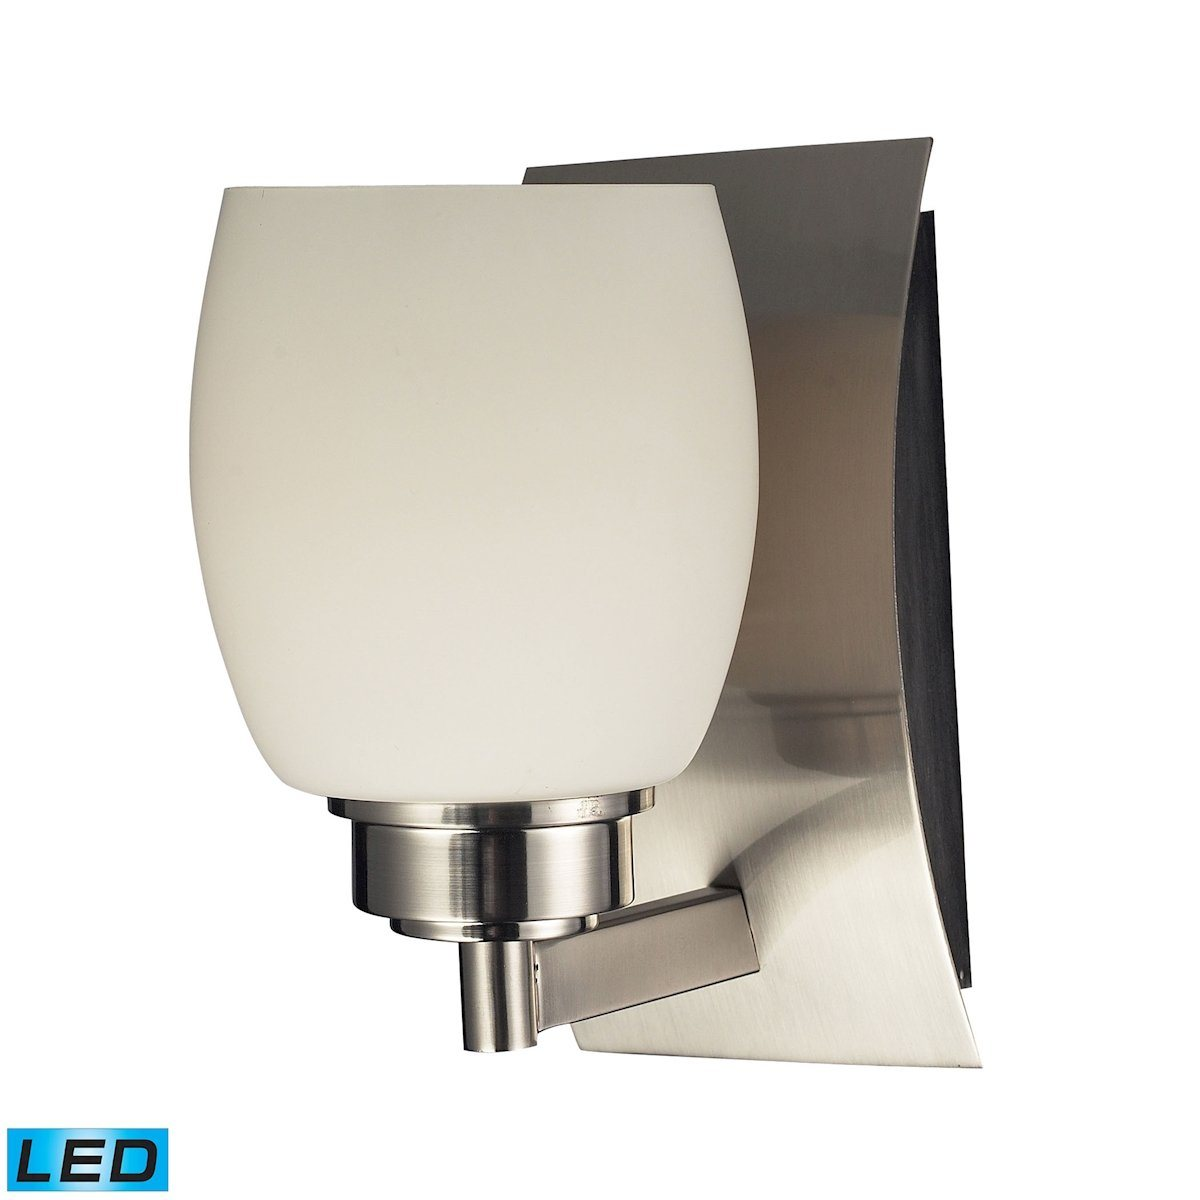 Northport 1 Light LED Vanity In Satin Nickel And Opal White Glass Wall Elk Lighting